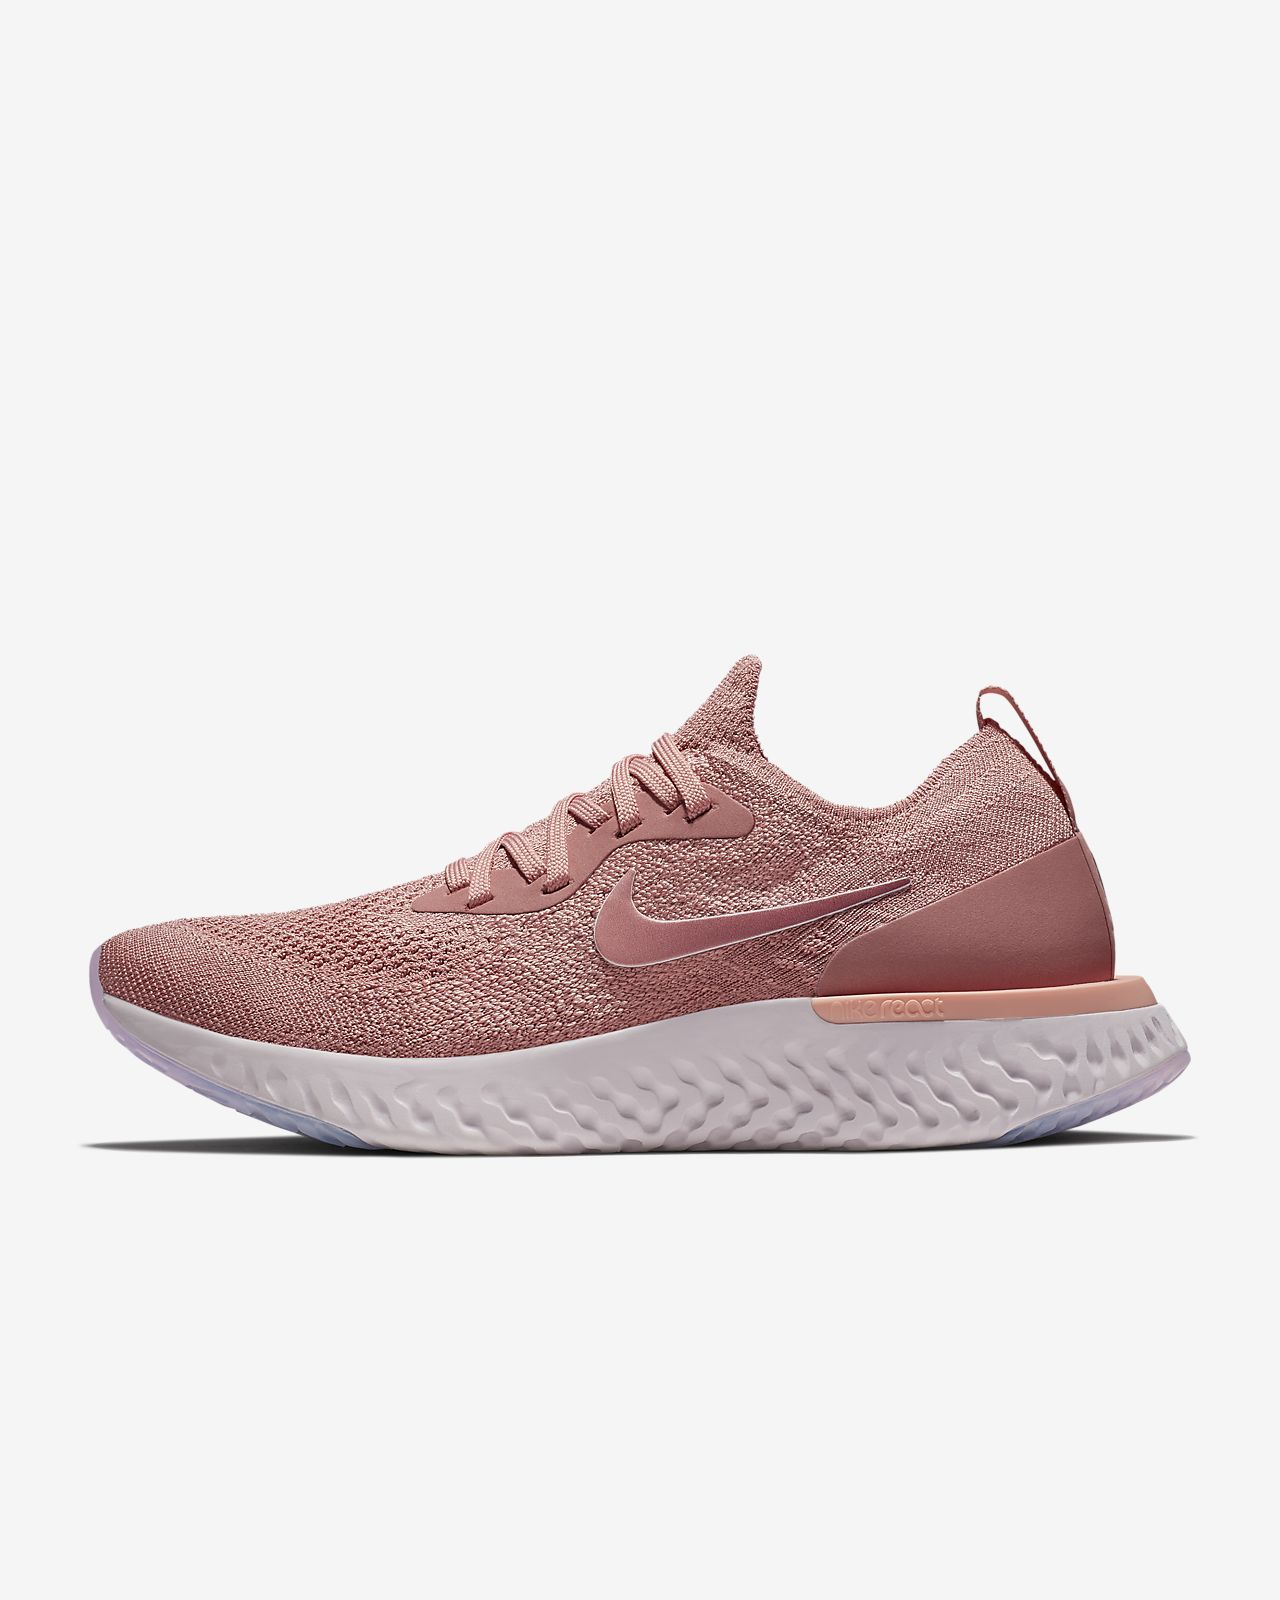 54658cfb23c3f Nike Epic React Flyknit 1 Women s Running Shoe. Nike.com MY